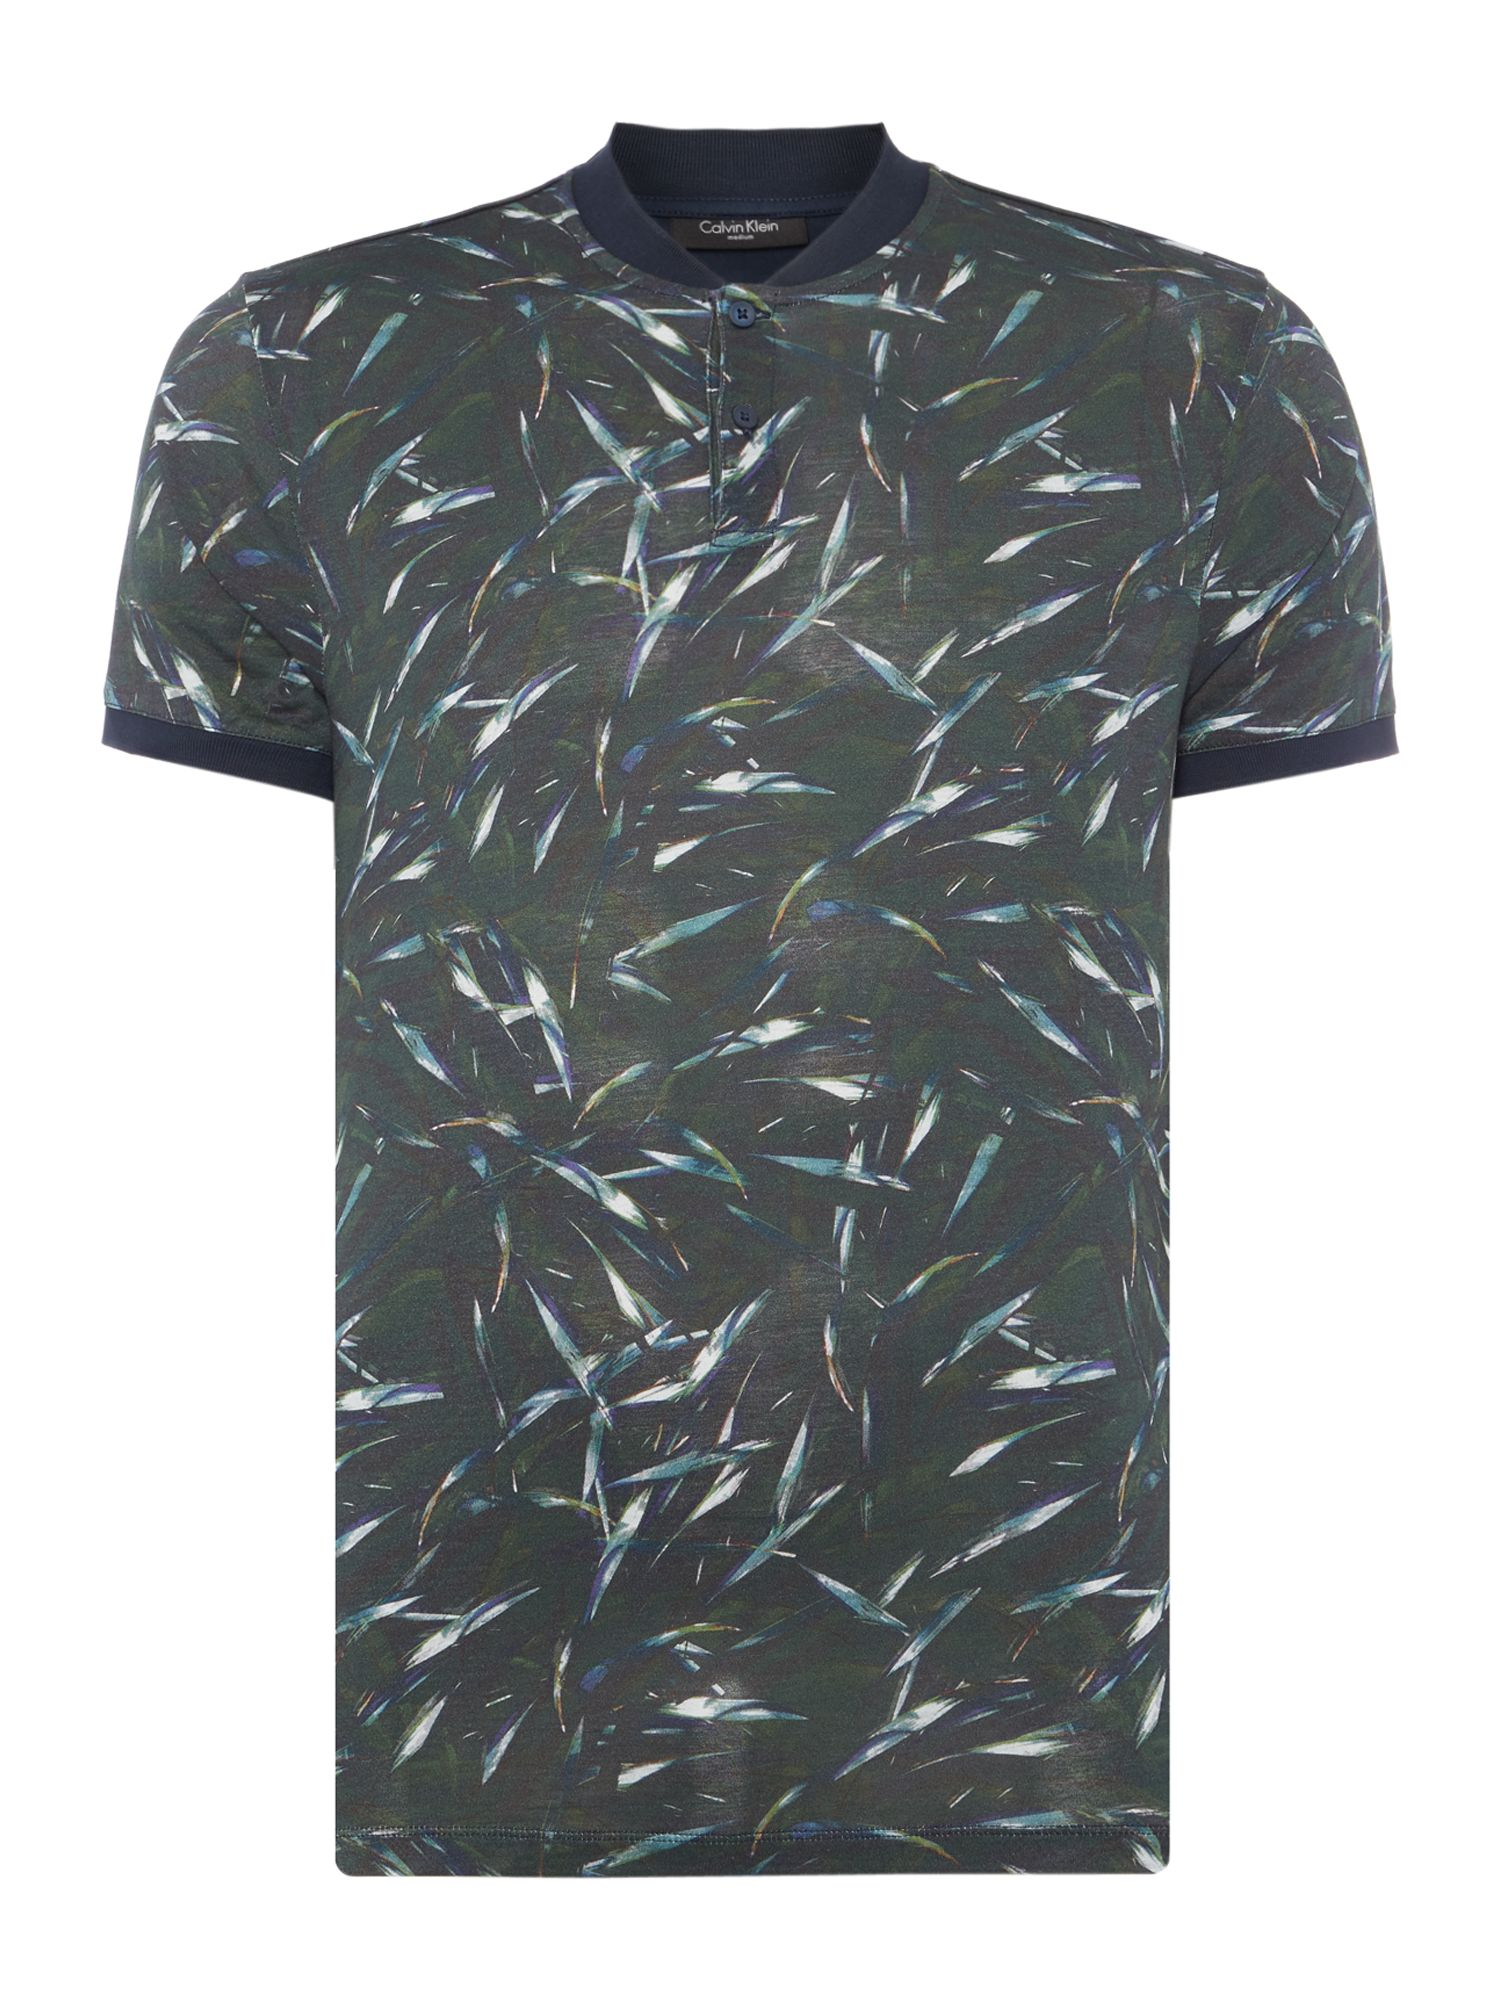 Men's Calvin Klein Jalef Digital Print T-shirt, Green